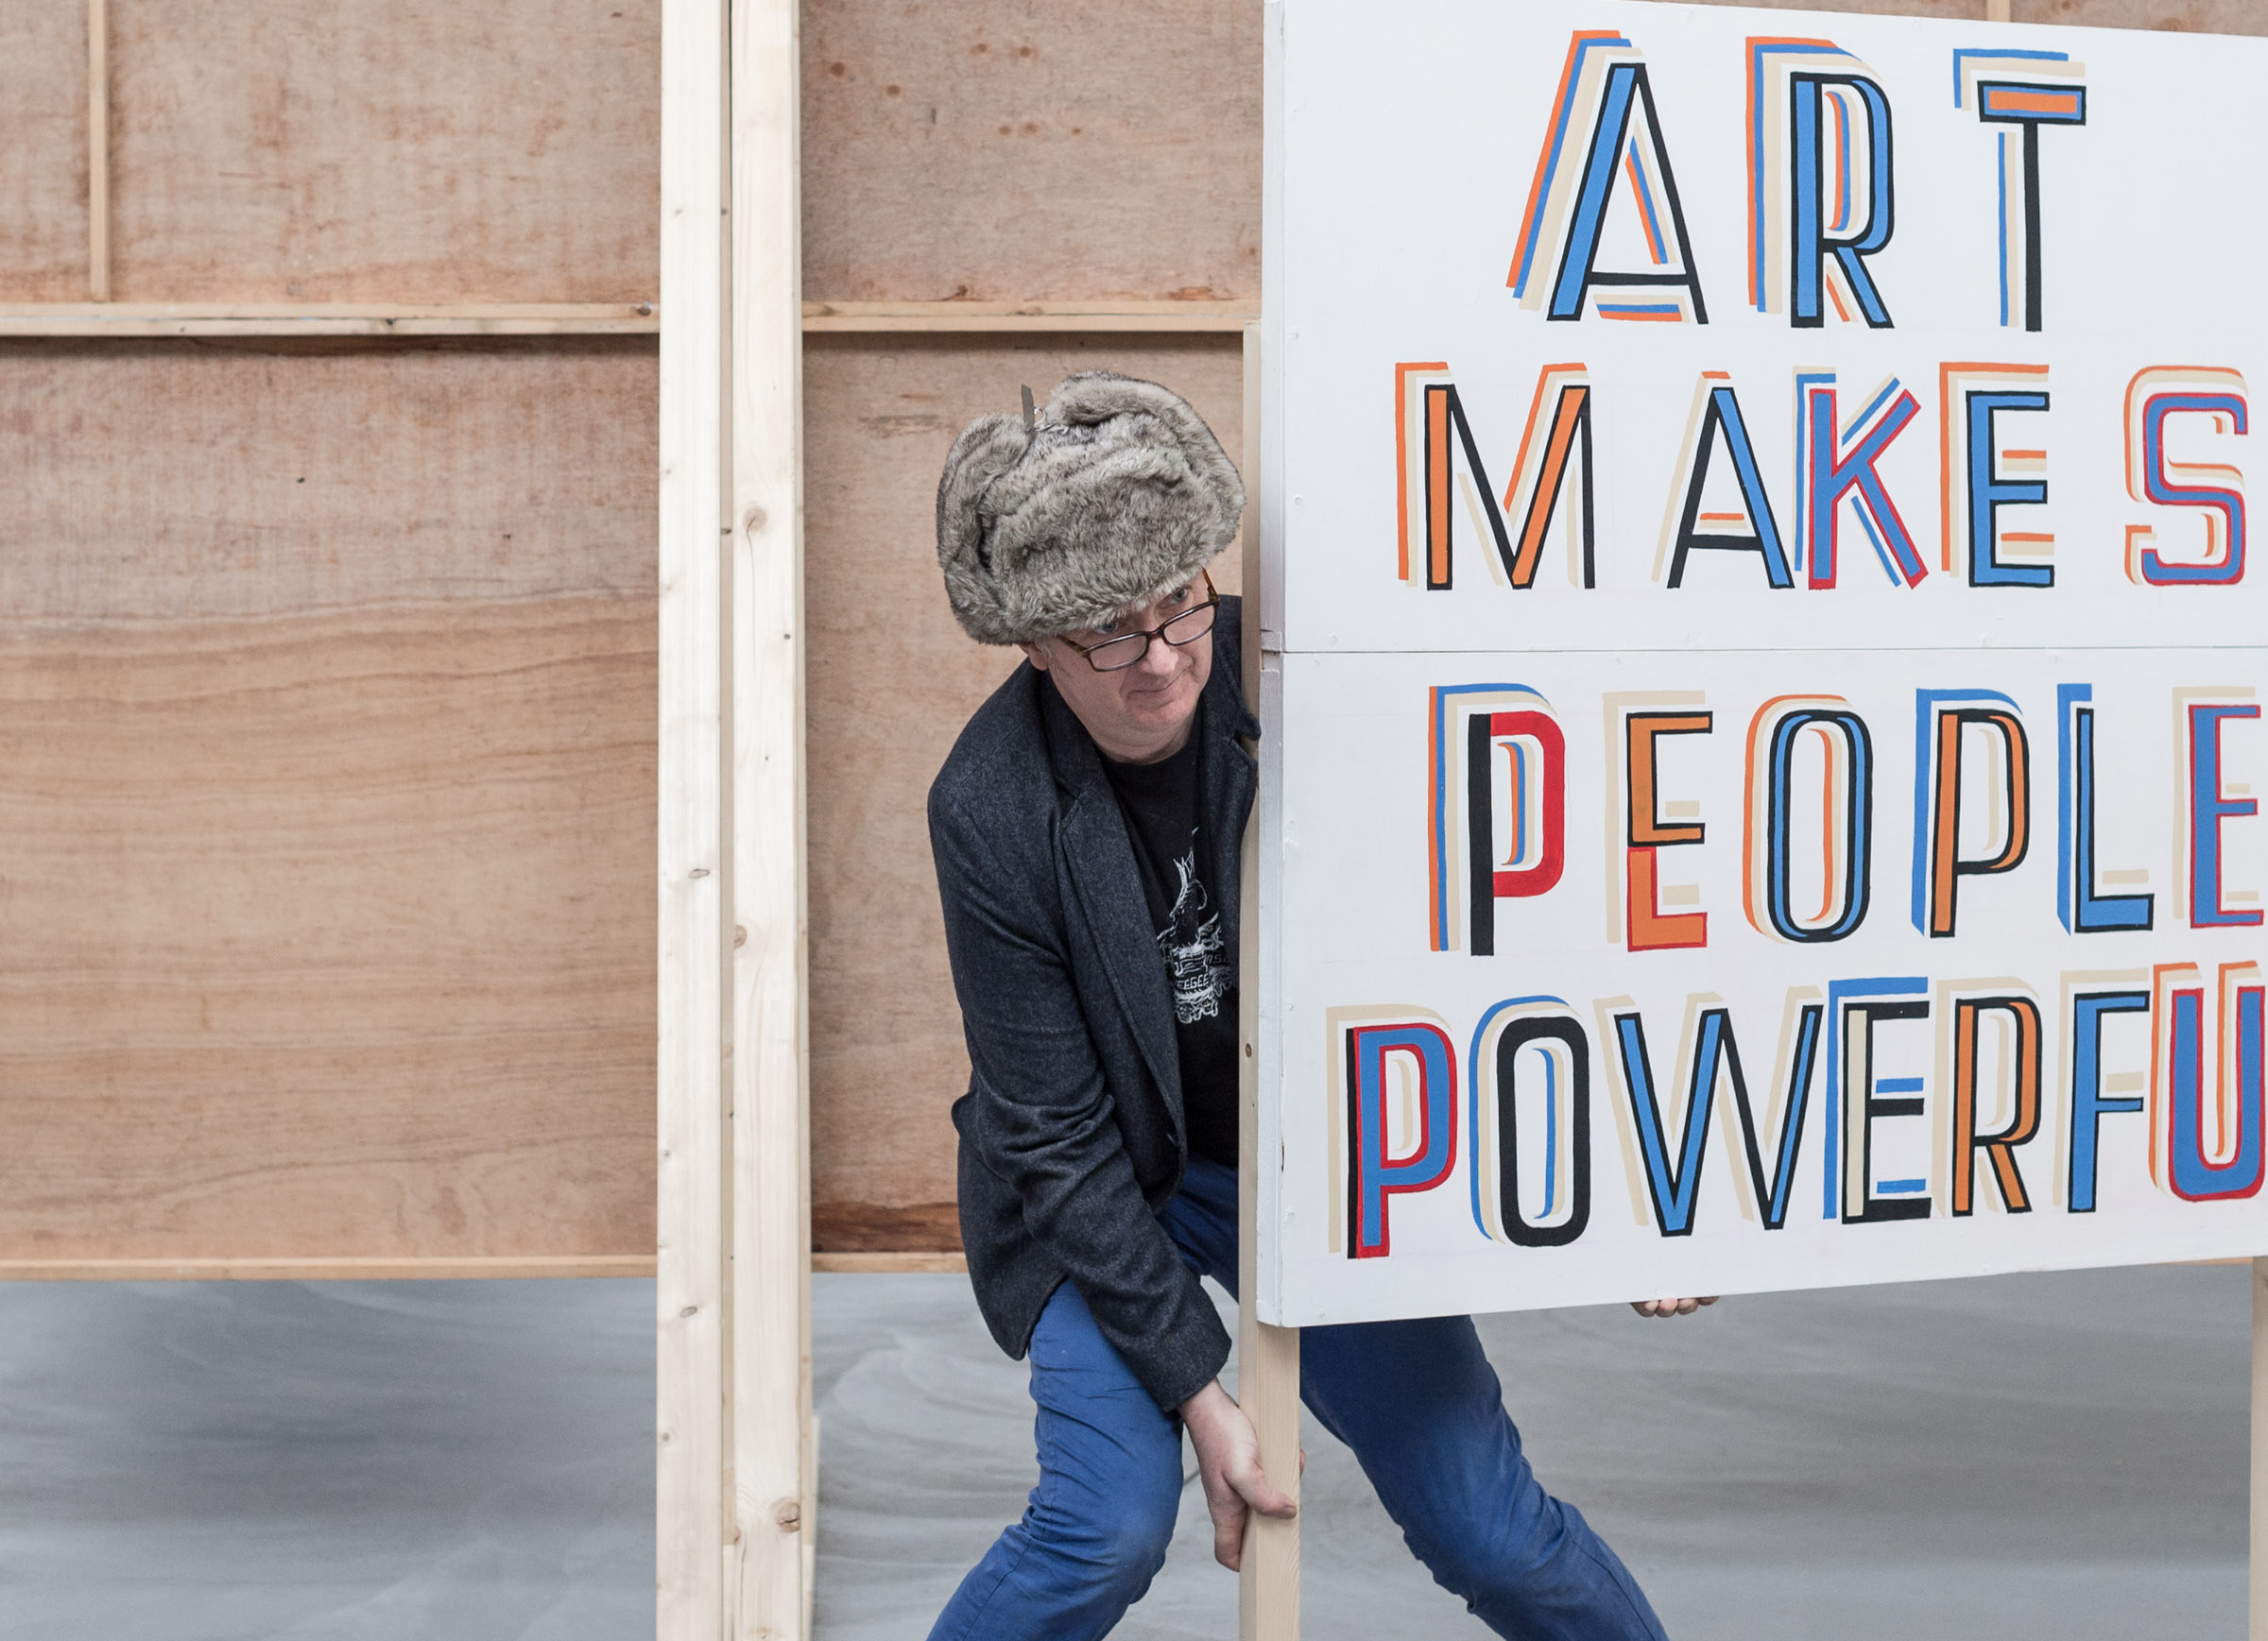 Stefan von Bartha spoke to the artist Bob & Roberta Smith, discussing art and music, the challenges of Instagram, and his new book – followed by a live performance of a song written in lockdown